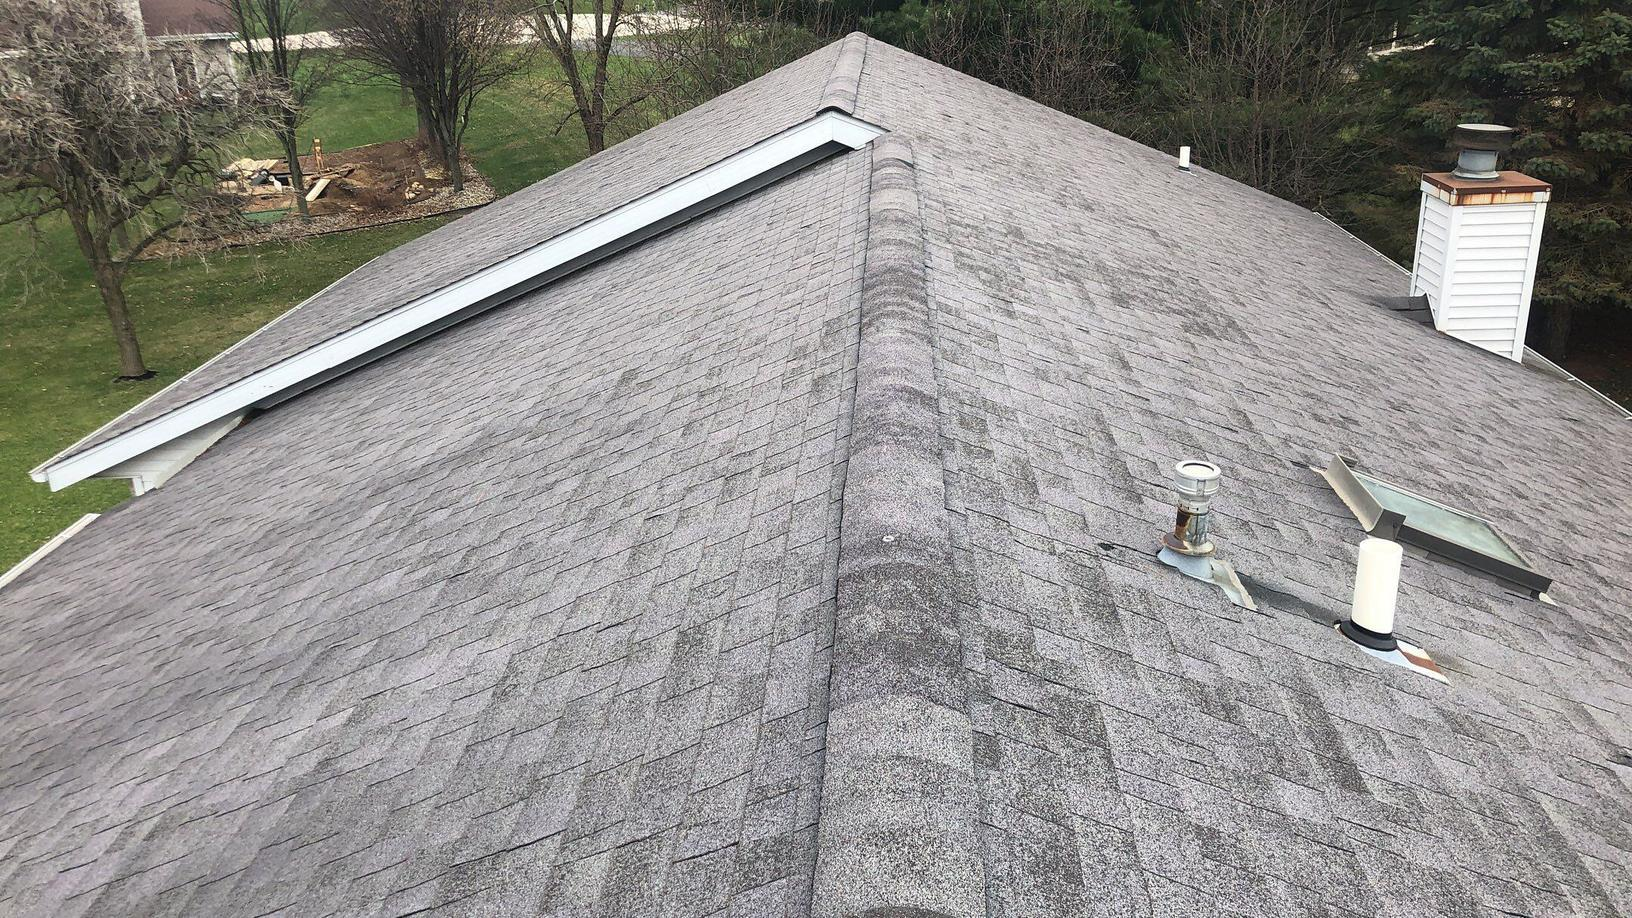 Atlantic Blue Roof Replacement in Roscoe, IL - Before Photo